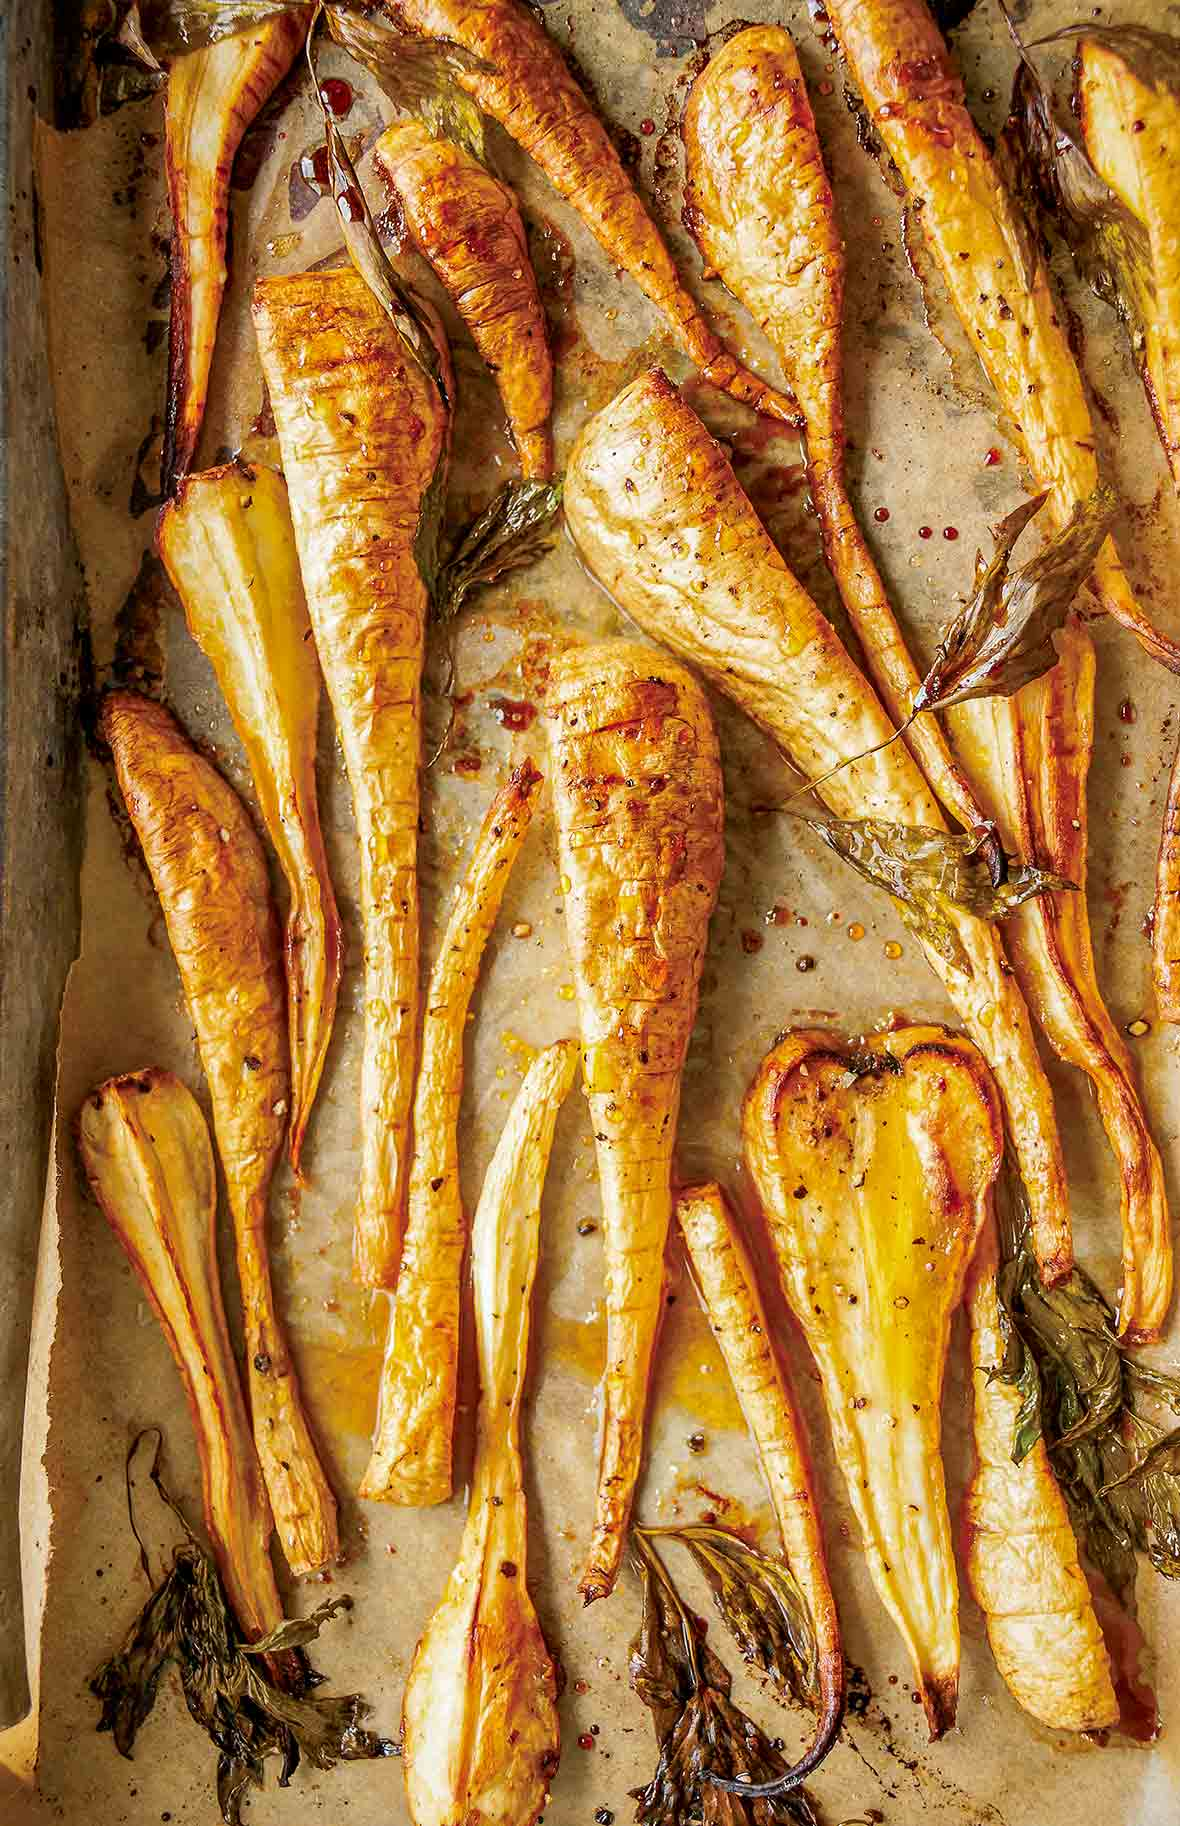 Sheet pan lined with parchment and sliced maple roasted parsnips